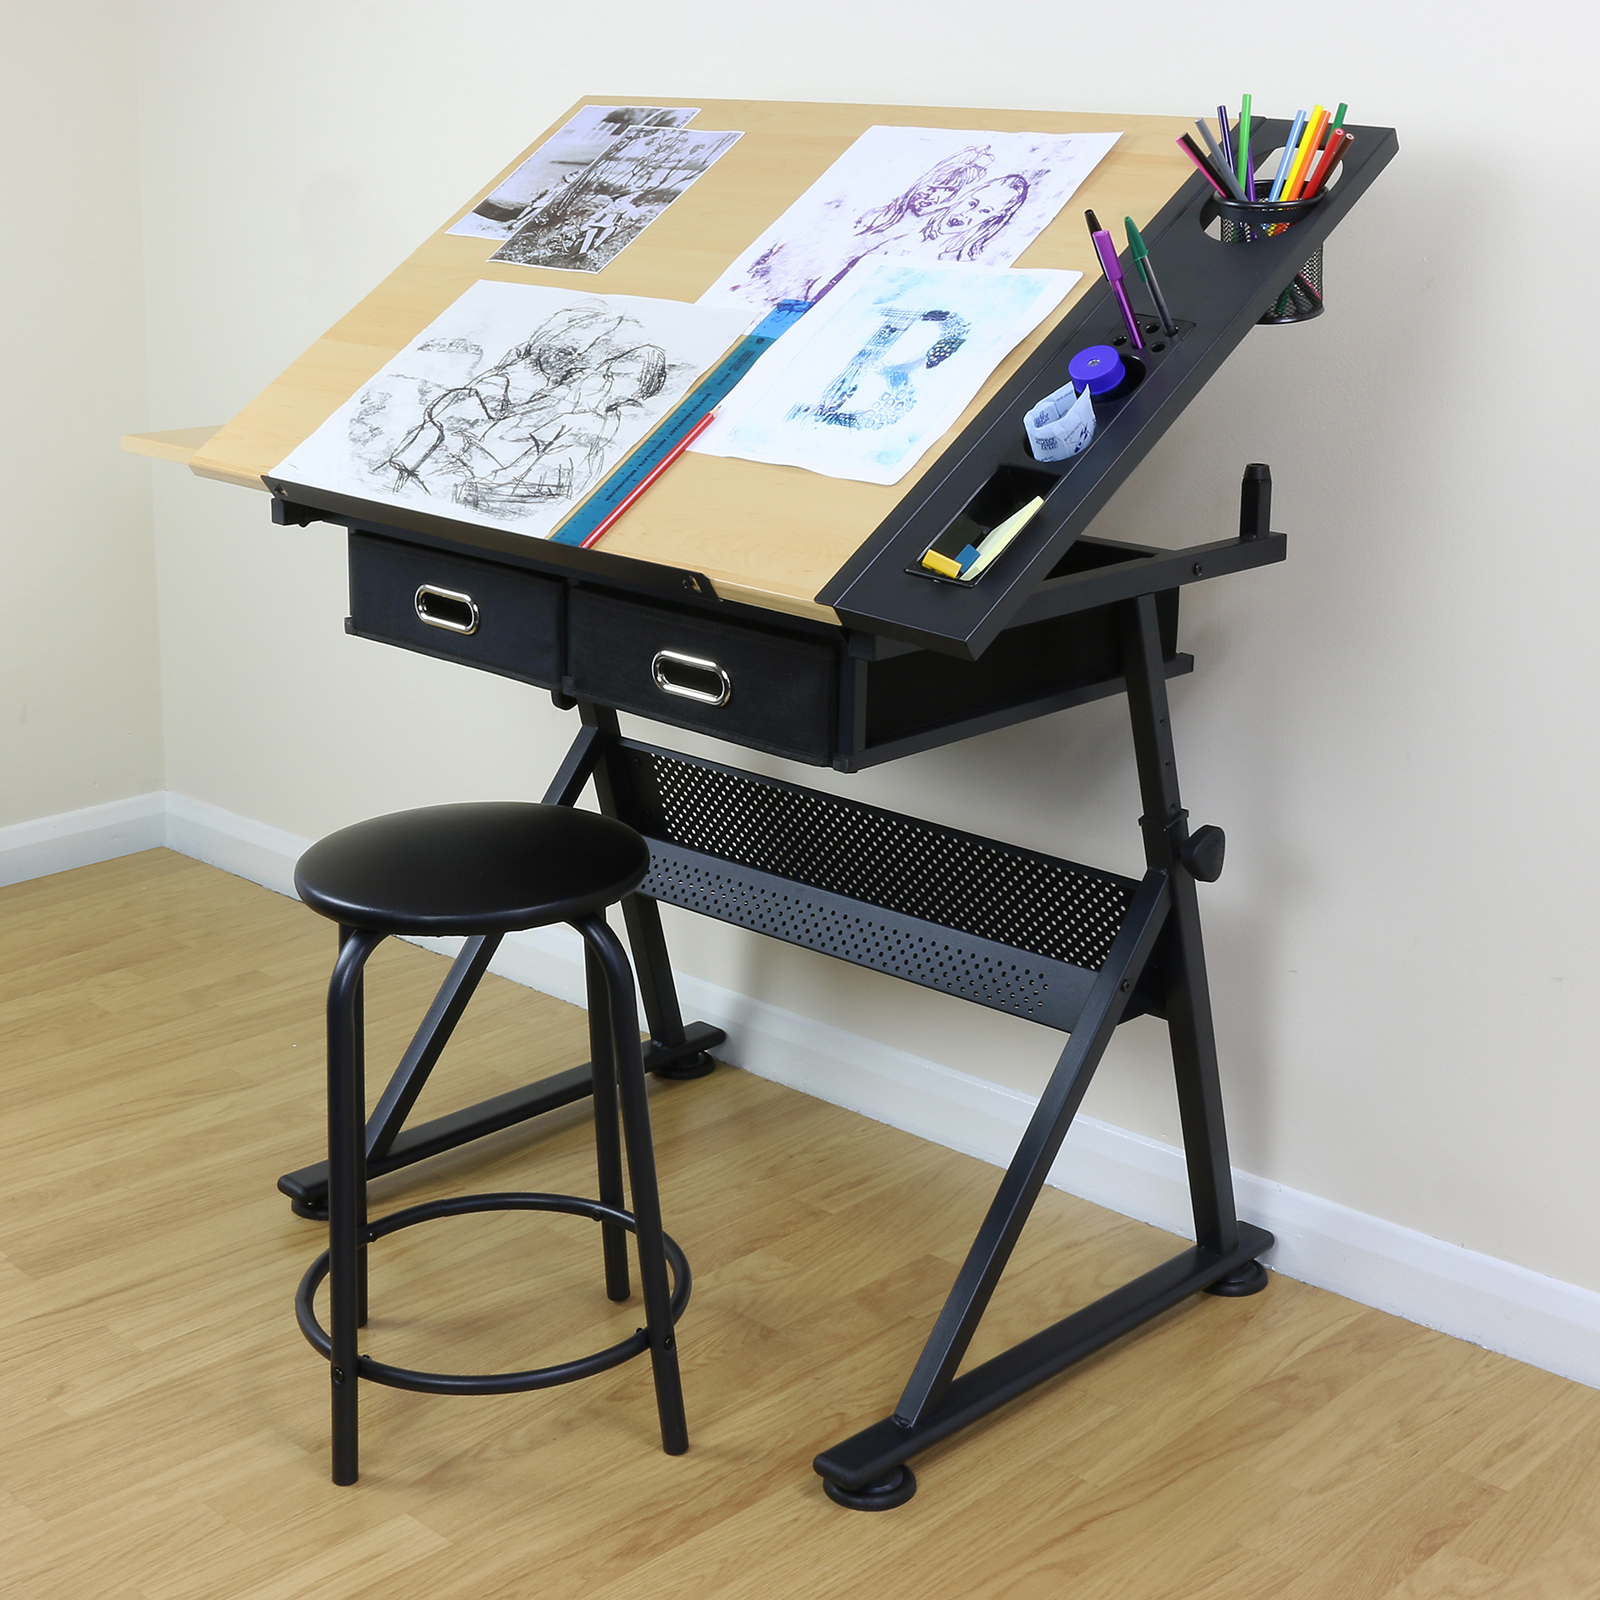 adjustable drawing board drafting table with stool craft. Black Bedroom Furniture Sets. Home Design Ideas